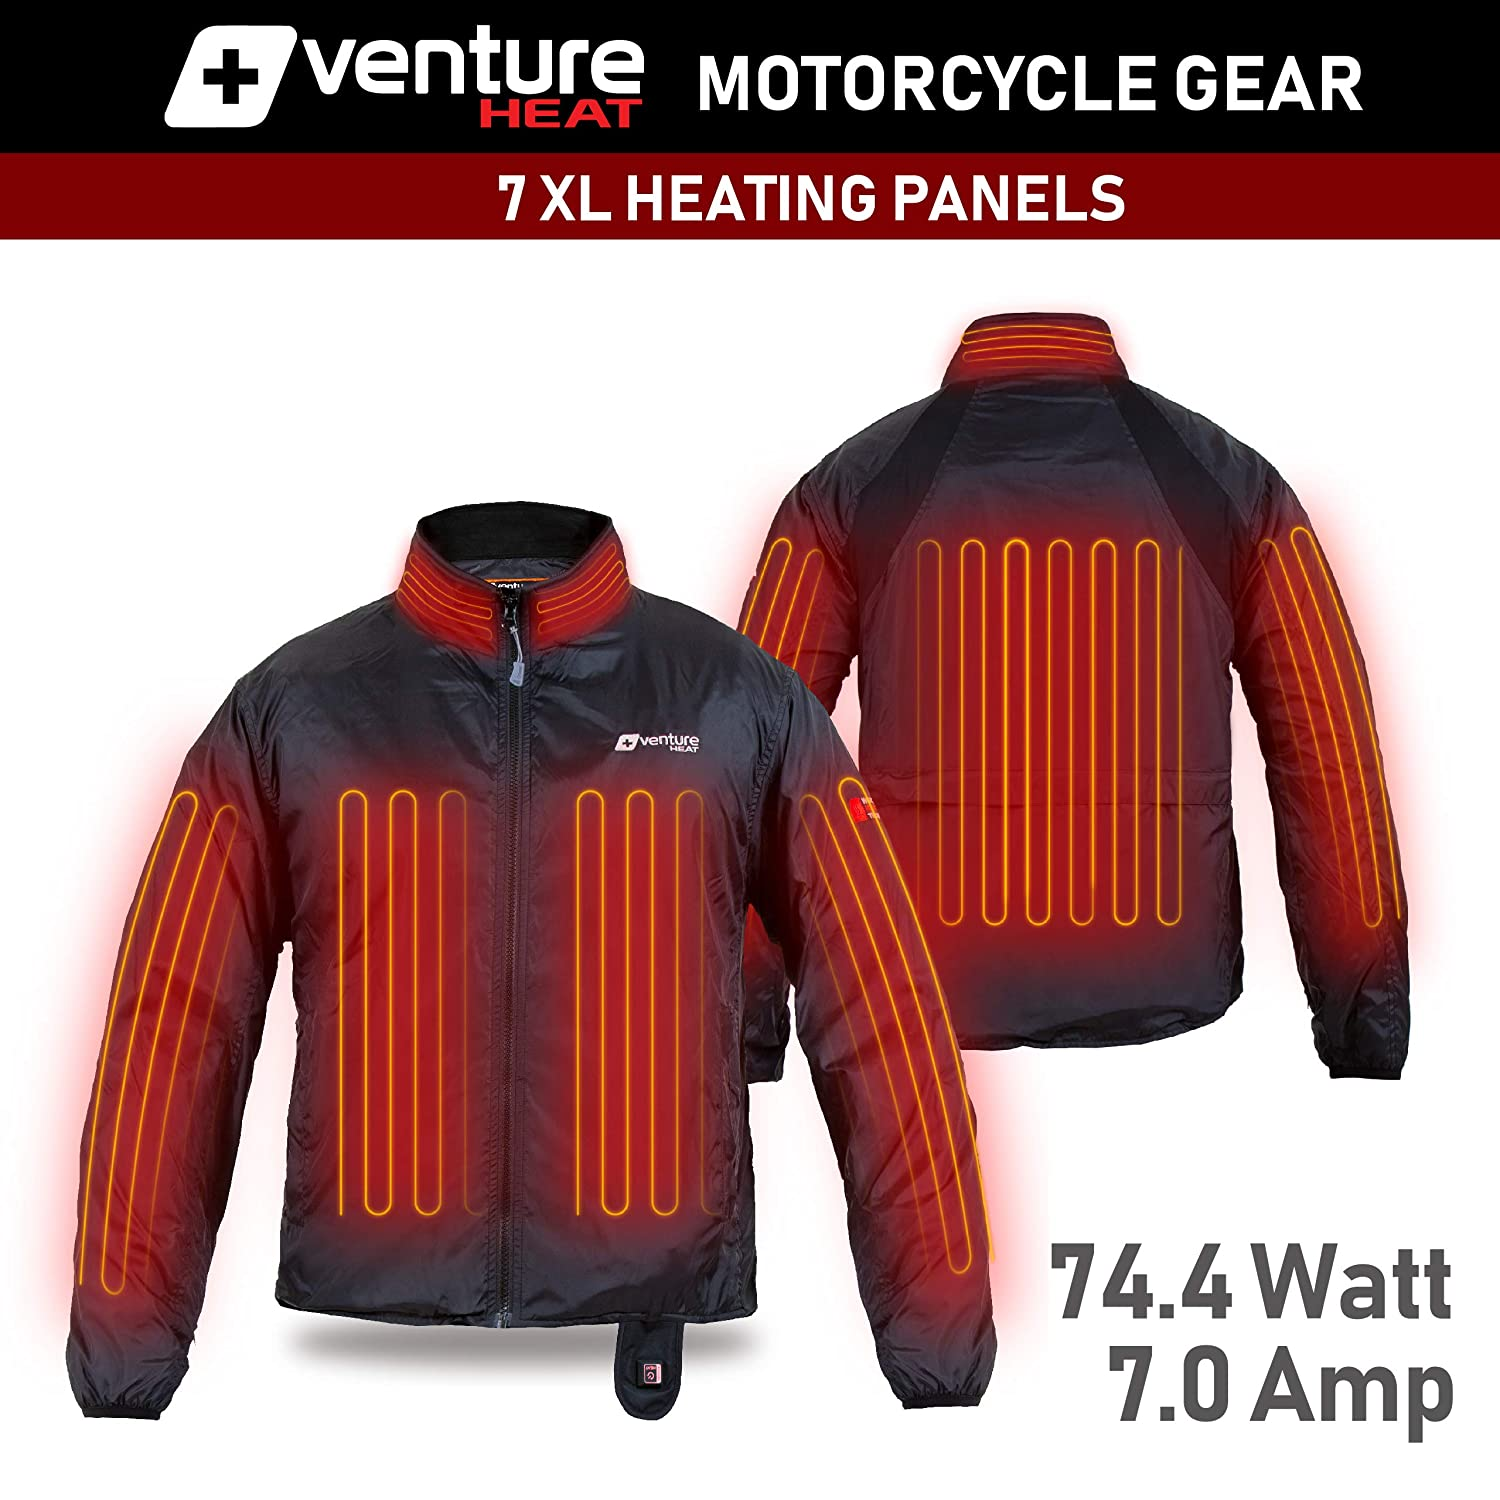 75.0W Deluxe Motorcycle Jacket for Men and Women Venture Heat 12V Motorcycle Heated Jacket Liner with Wireless Remote XXXL